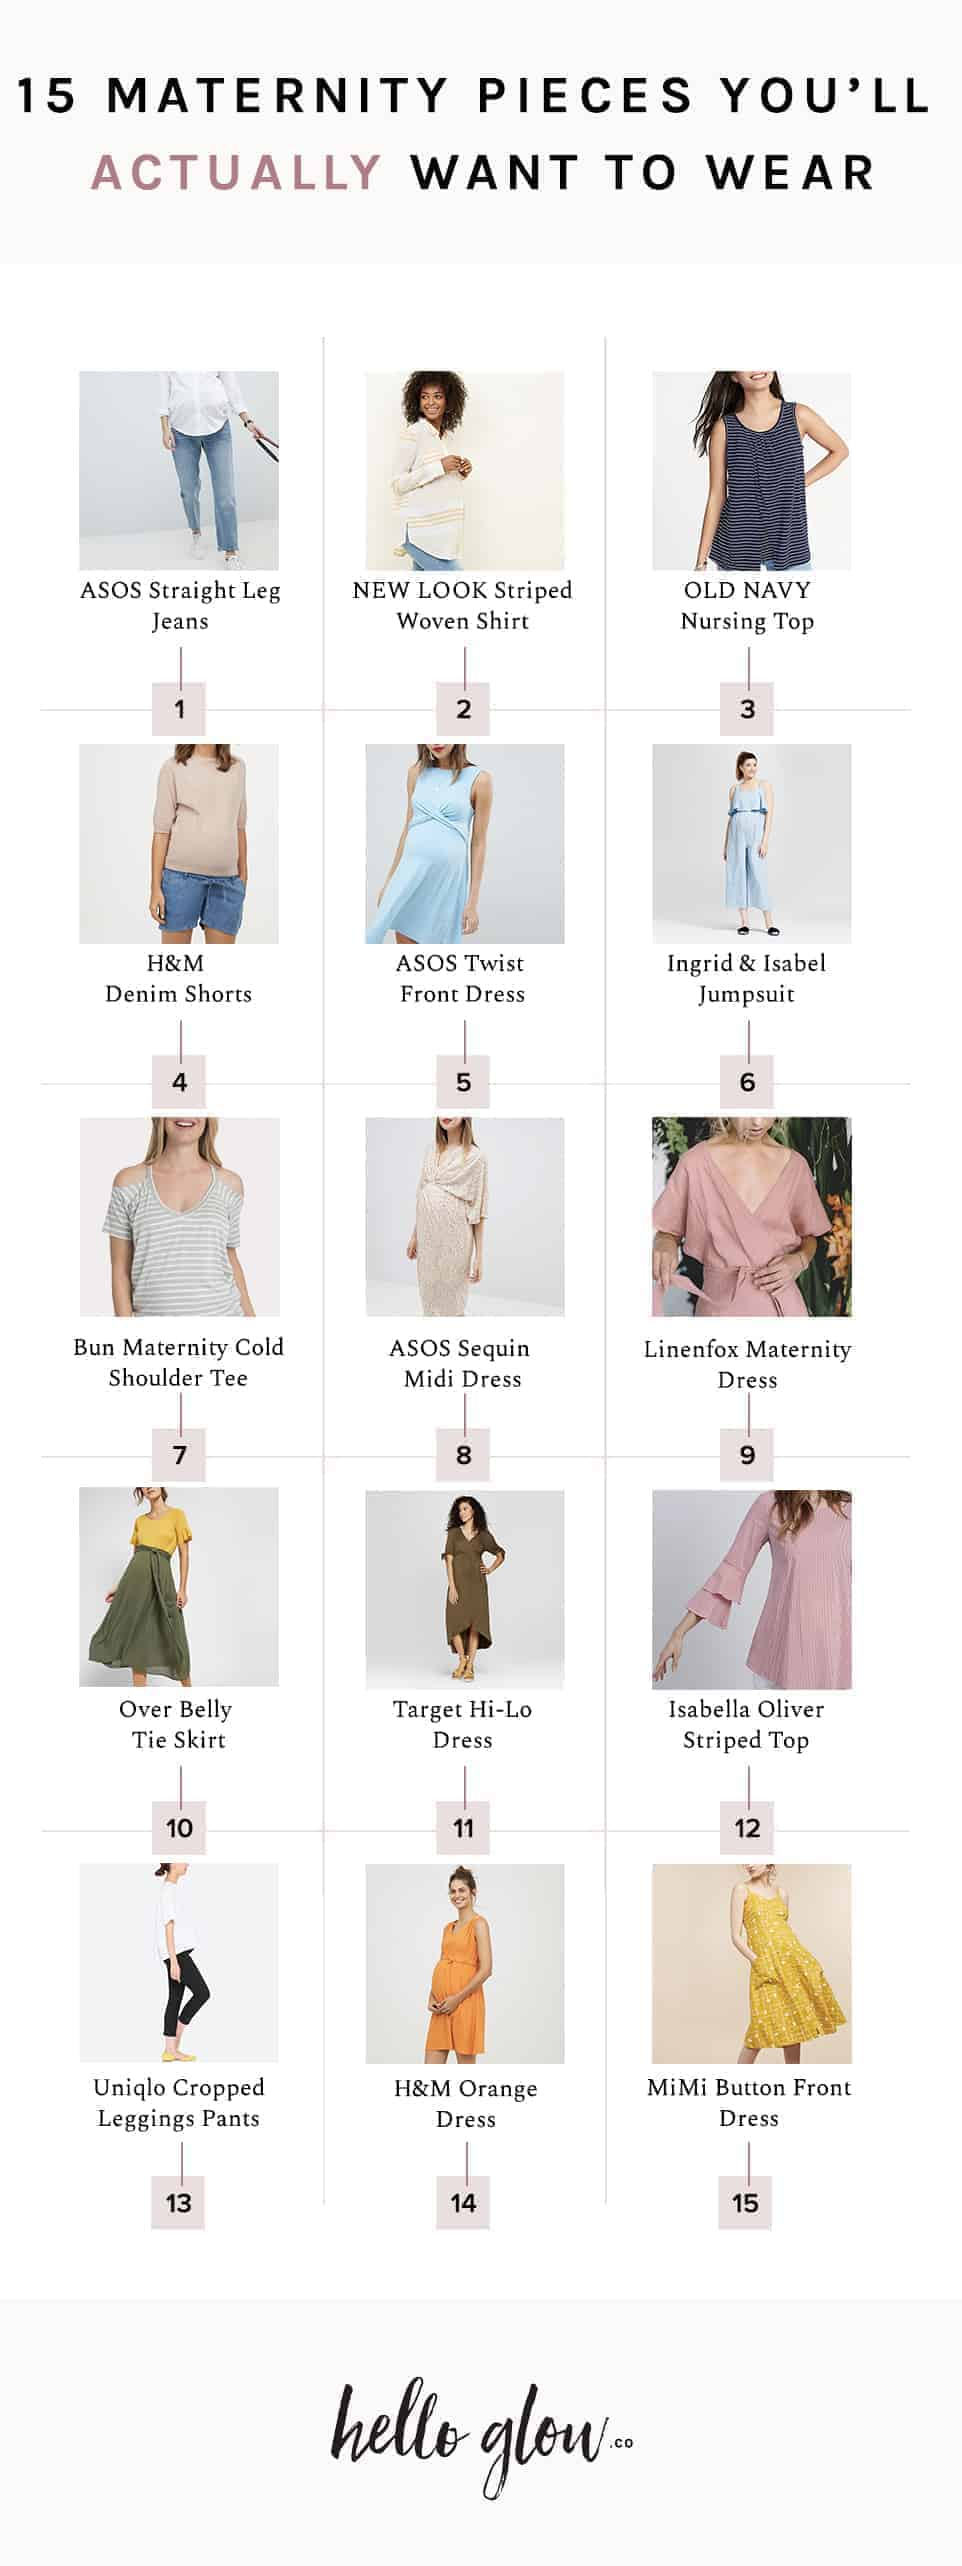 b6b8b1eec 15 Maternity Pieces You ll Actually Want to Wear